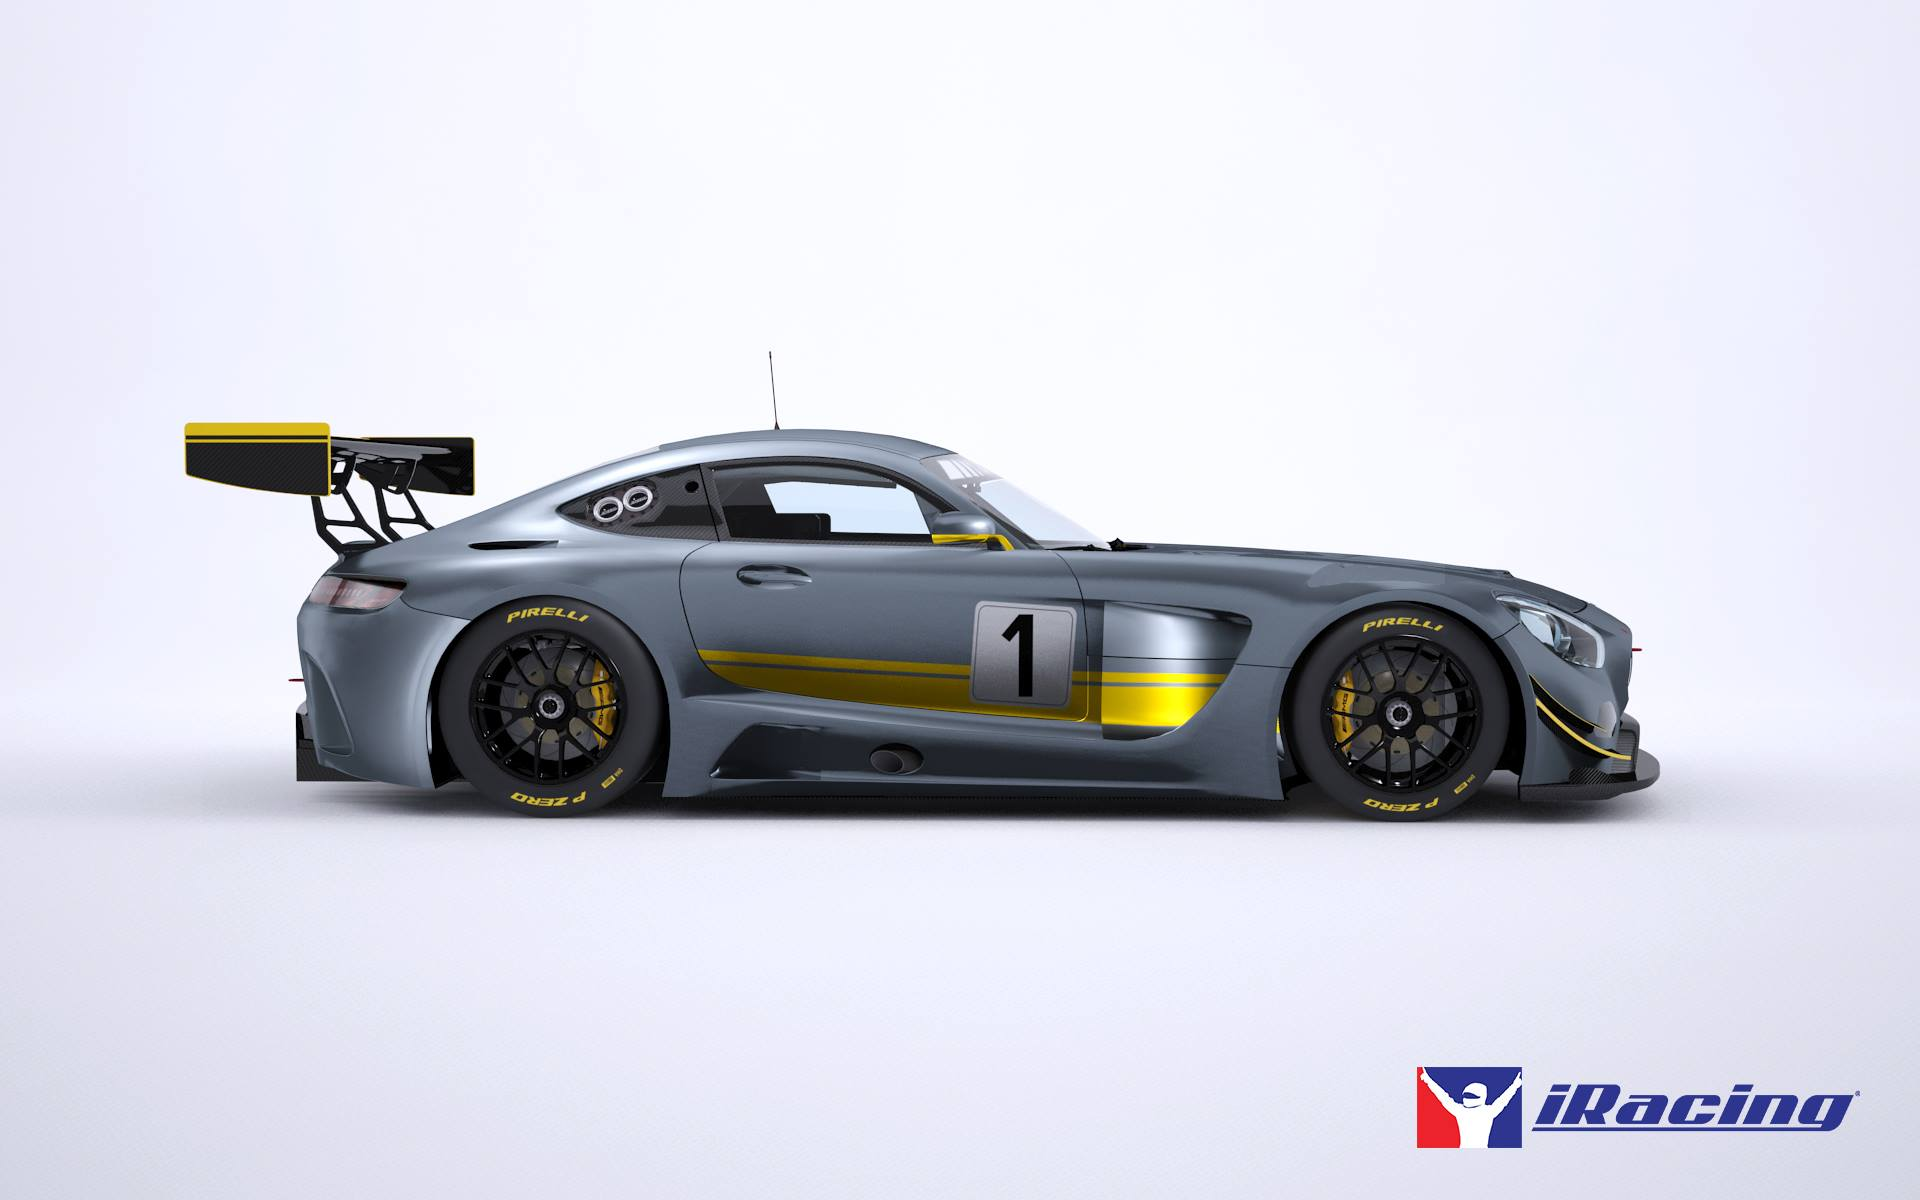 Project cars new mercedes amg gt3 previews virtualr sim racing - 25126999671_0c18ddc3de_o 25220202555_b72162f704_o